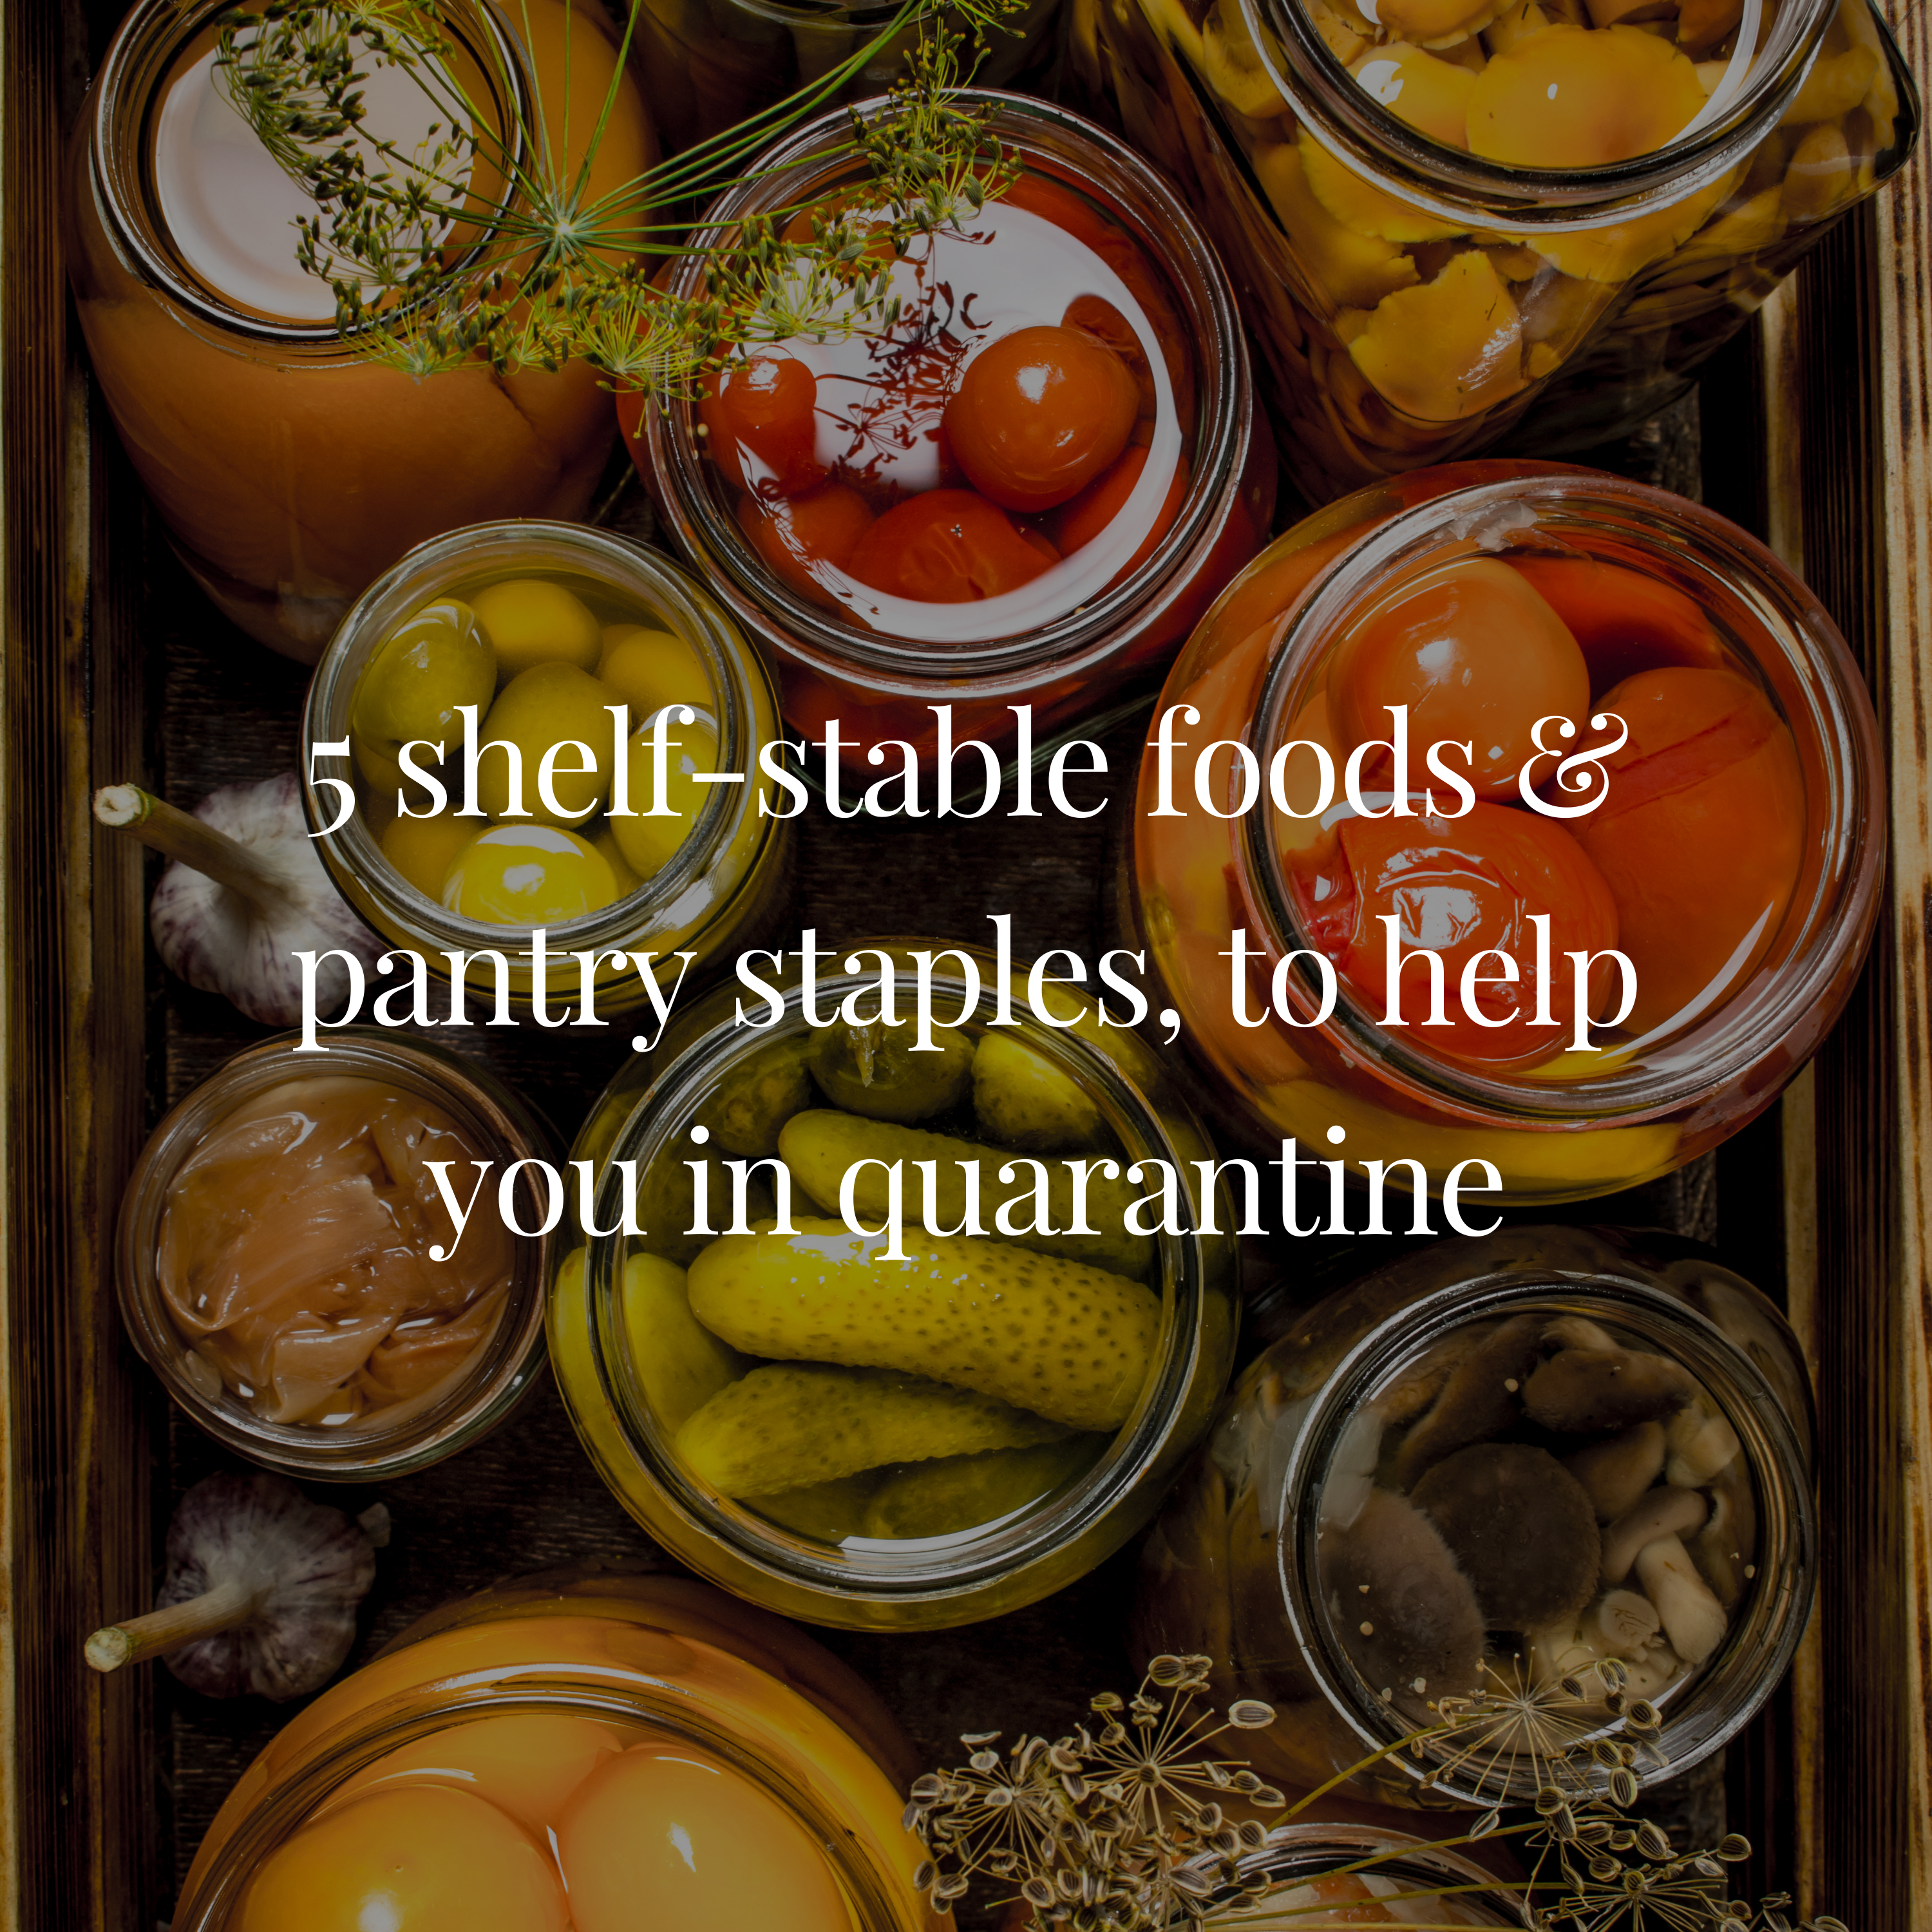 5 shelf-stable foods & pantry staples, to help you in quarantine